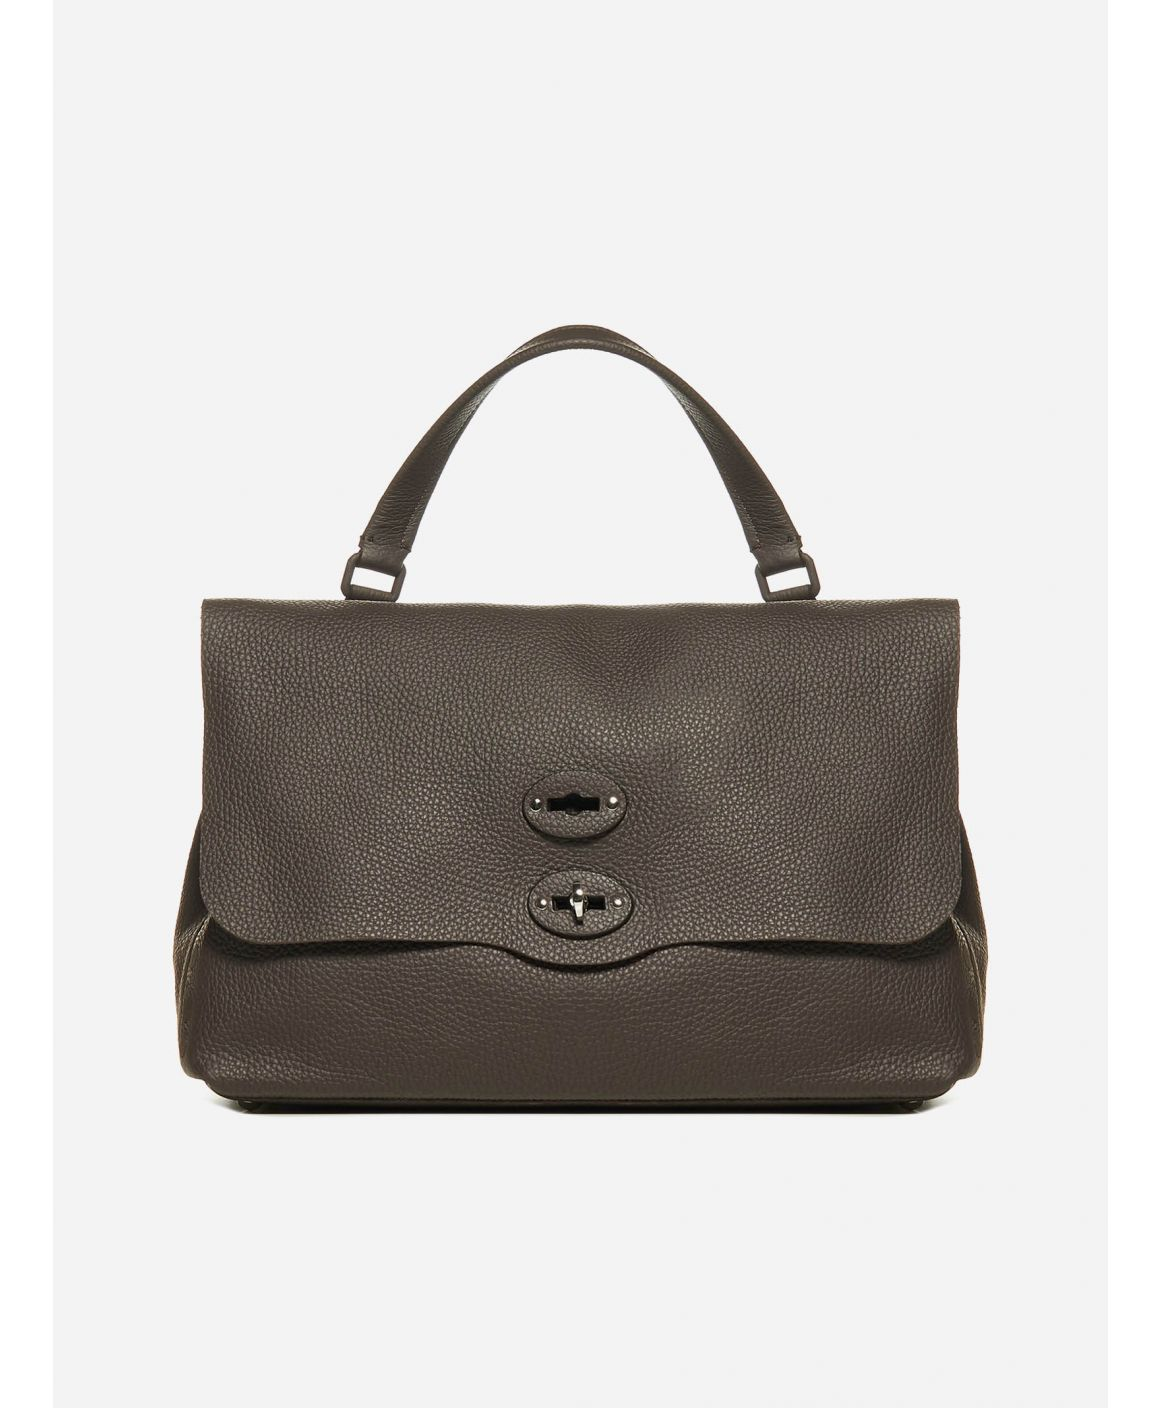 Postina M leather bag